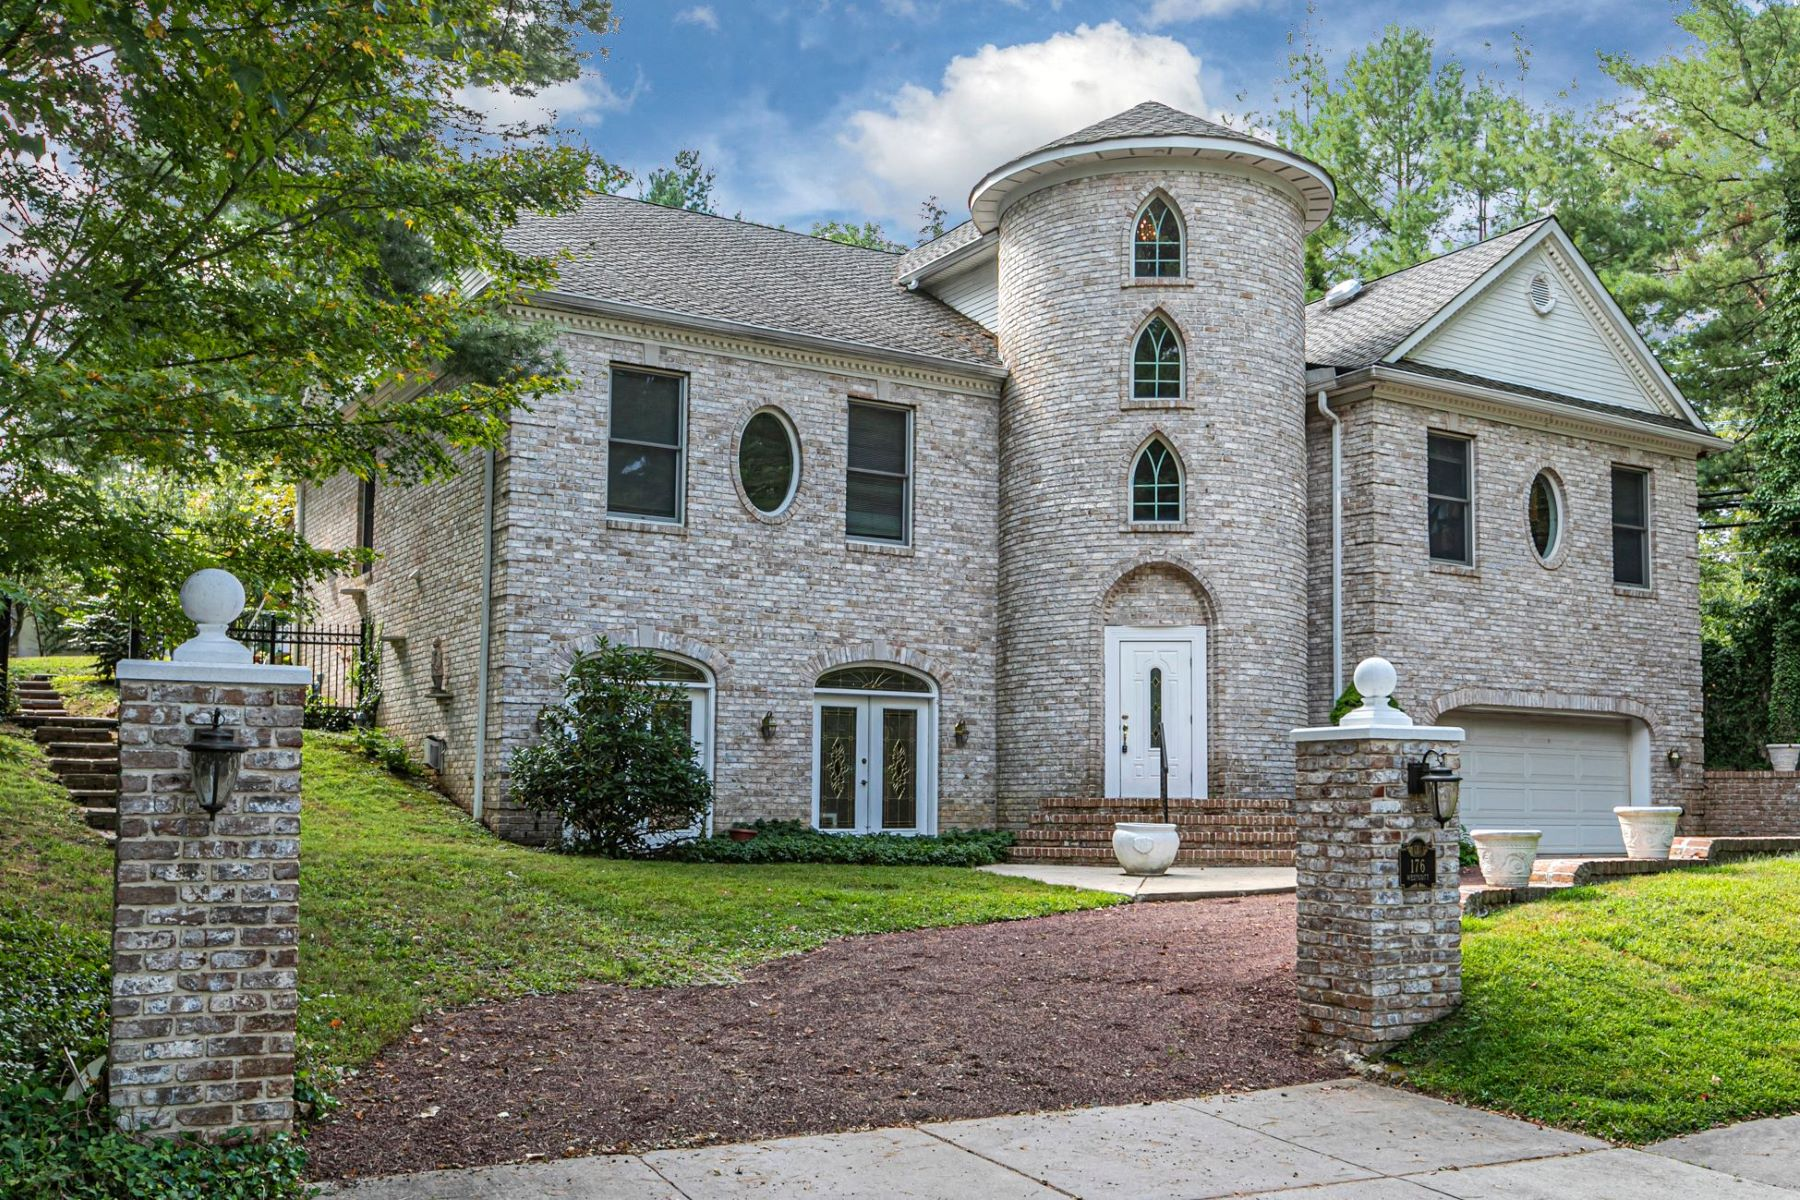 Property vì Bán tại Large, Lofty & Like No Other 176 Westcott Road, Princeton, New Jersey 08540 Hoa Kỳ